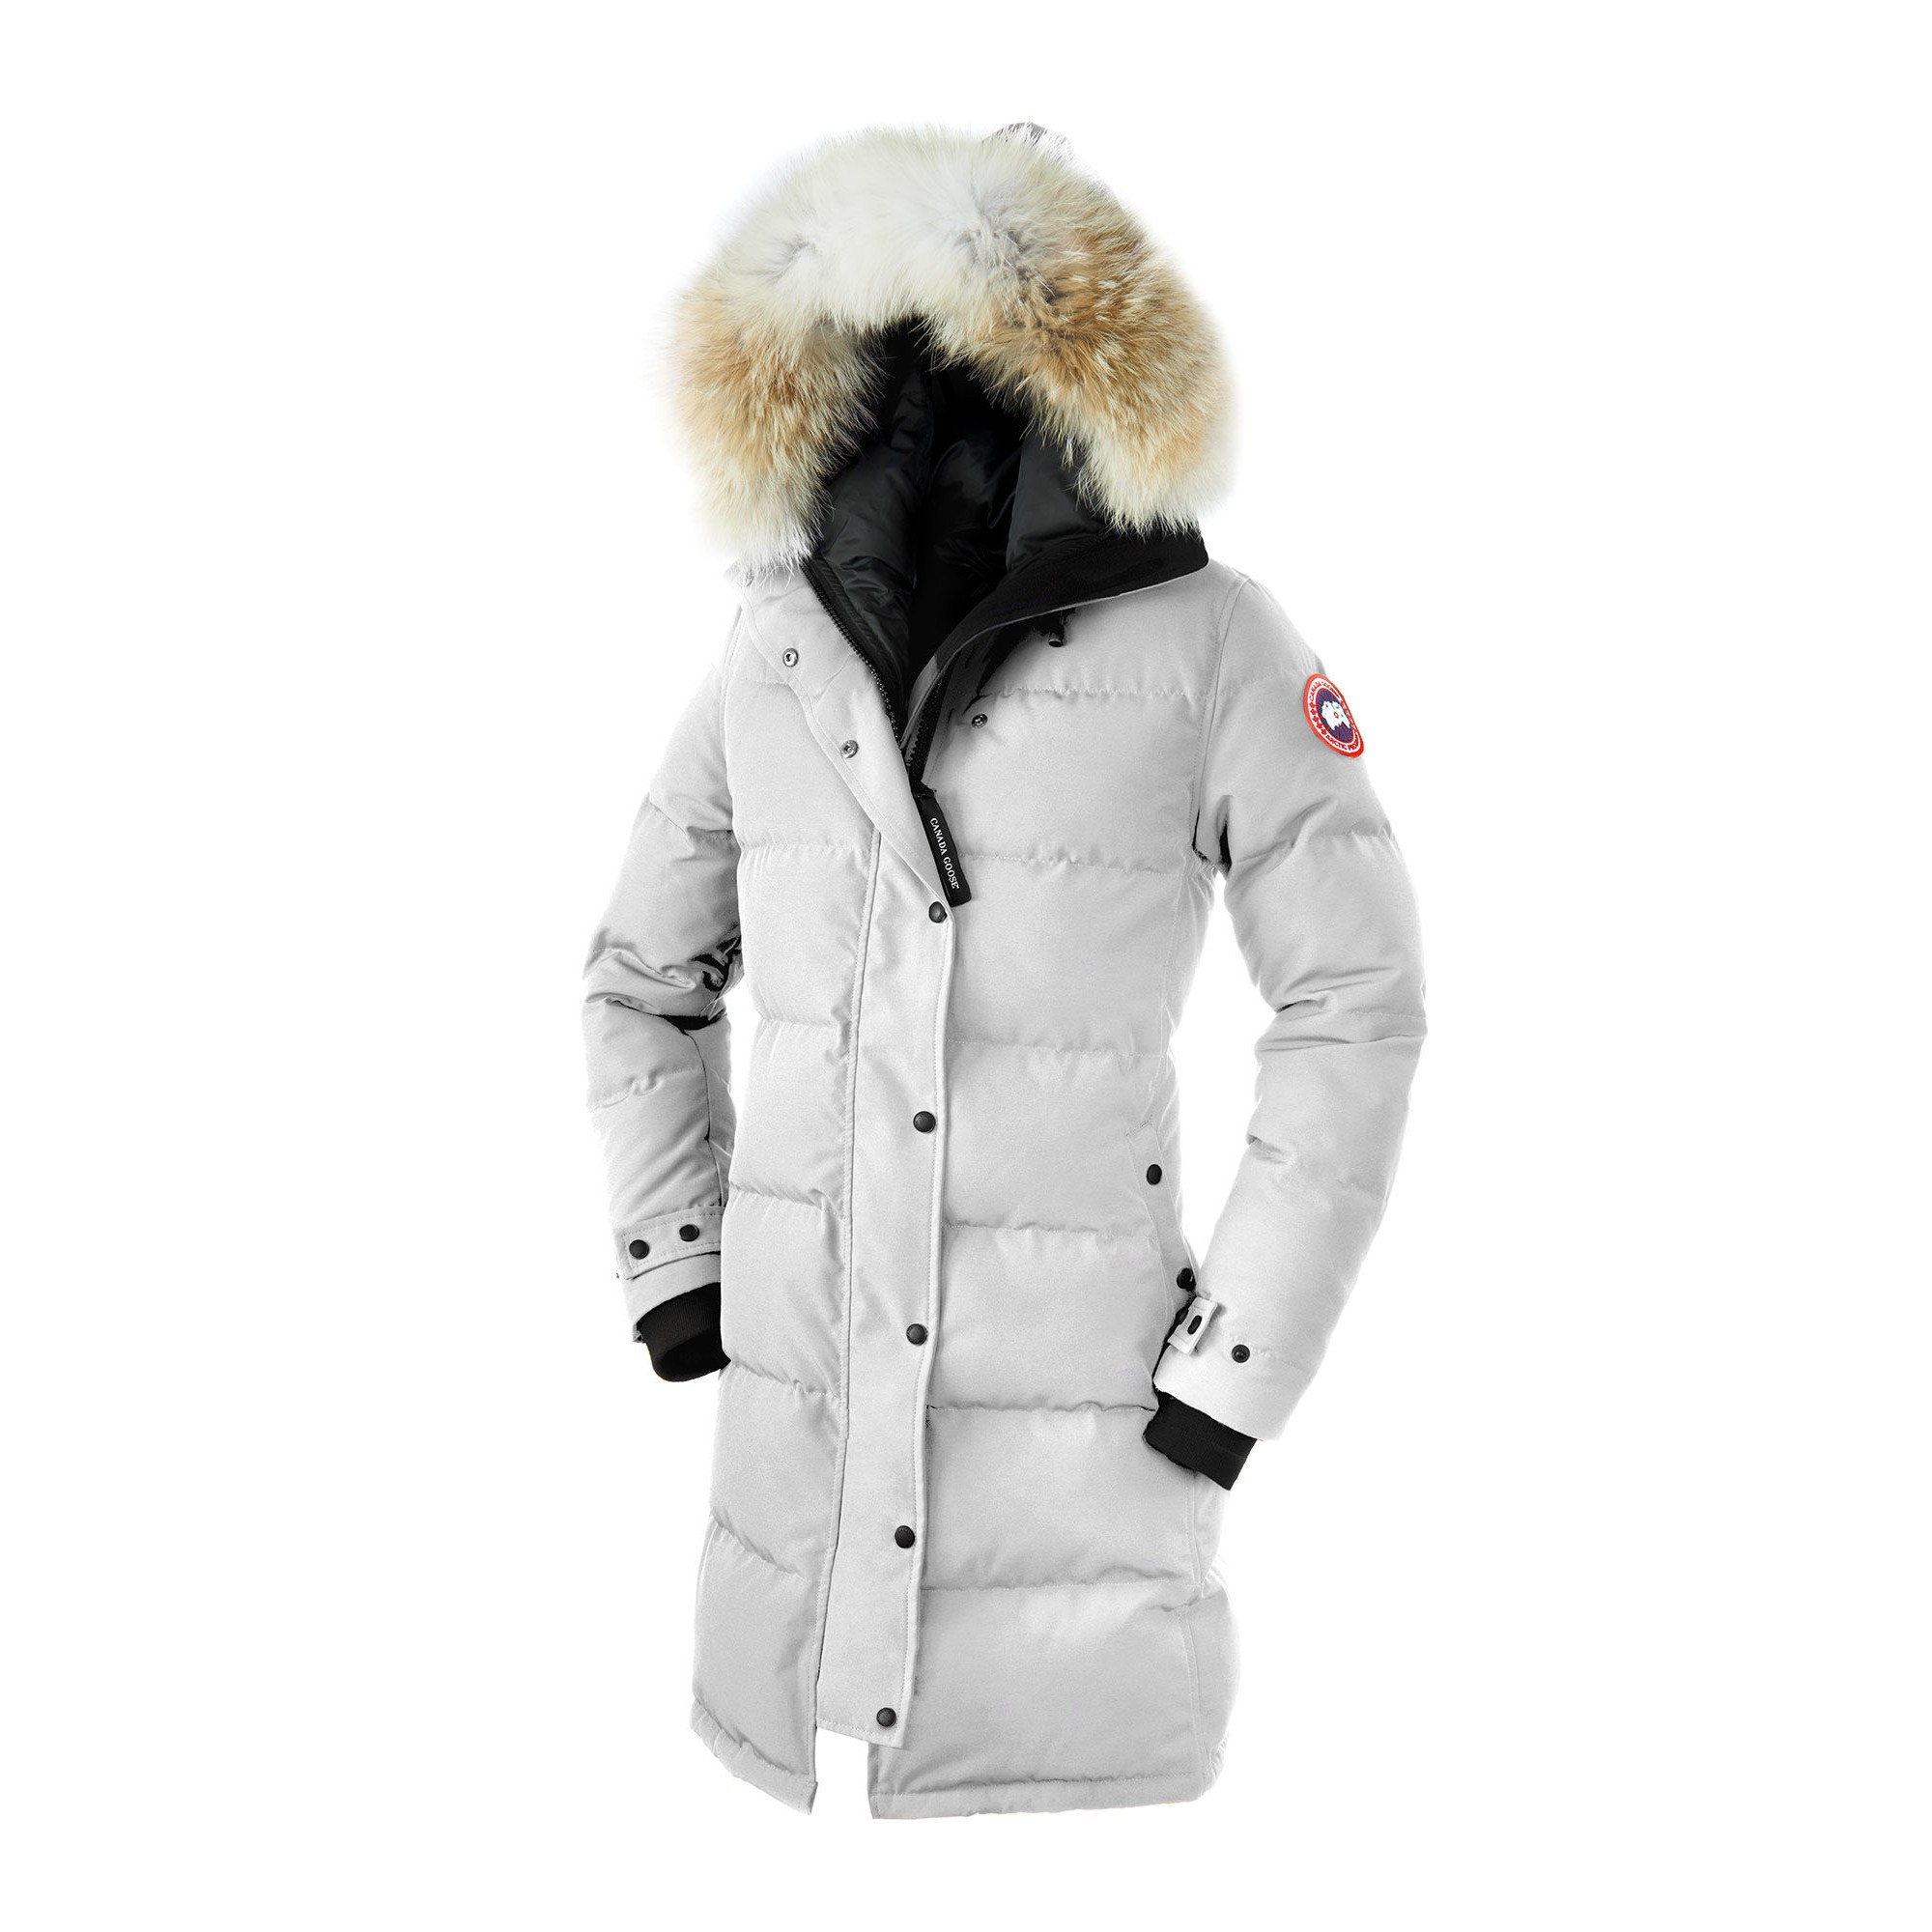 d1f35dce7927 CANADA GOOSE SHELBURNE PARKA WOMEN White 3802L. Display Gallery Item 1 ...